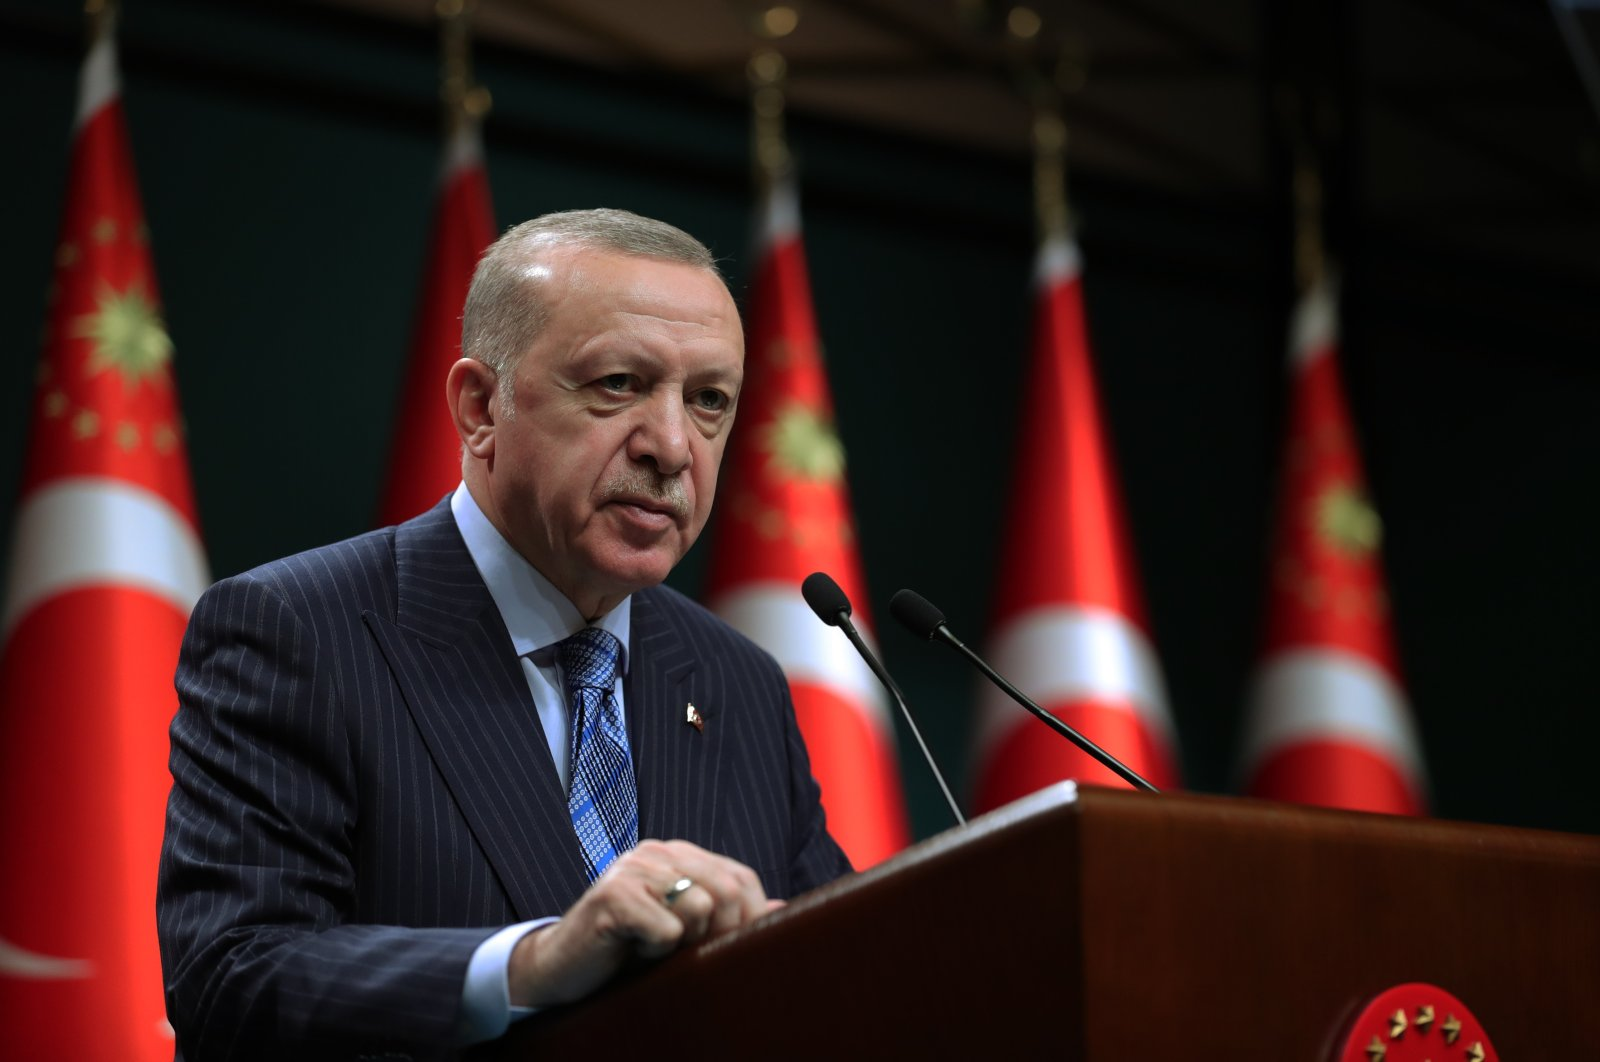 President Recep Tayyip Erdoğan prepares to speak before a press conference at the Presidential Complex, Ankara, Turkey, May 17, 2021 (AA Photo)